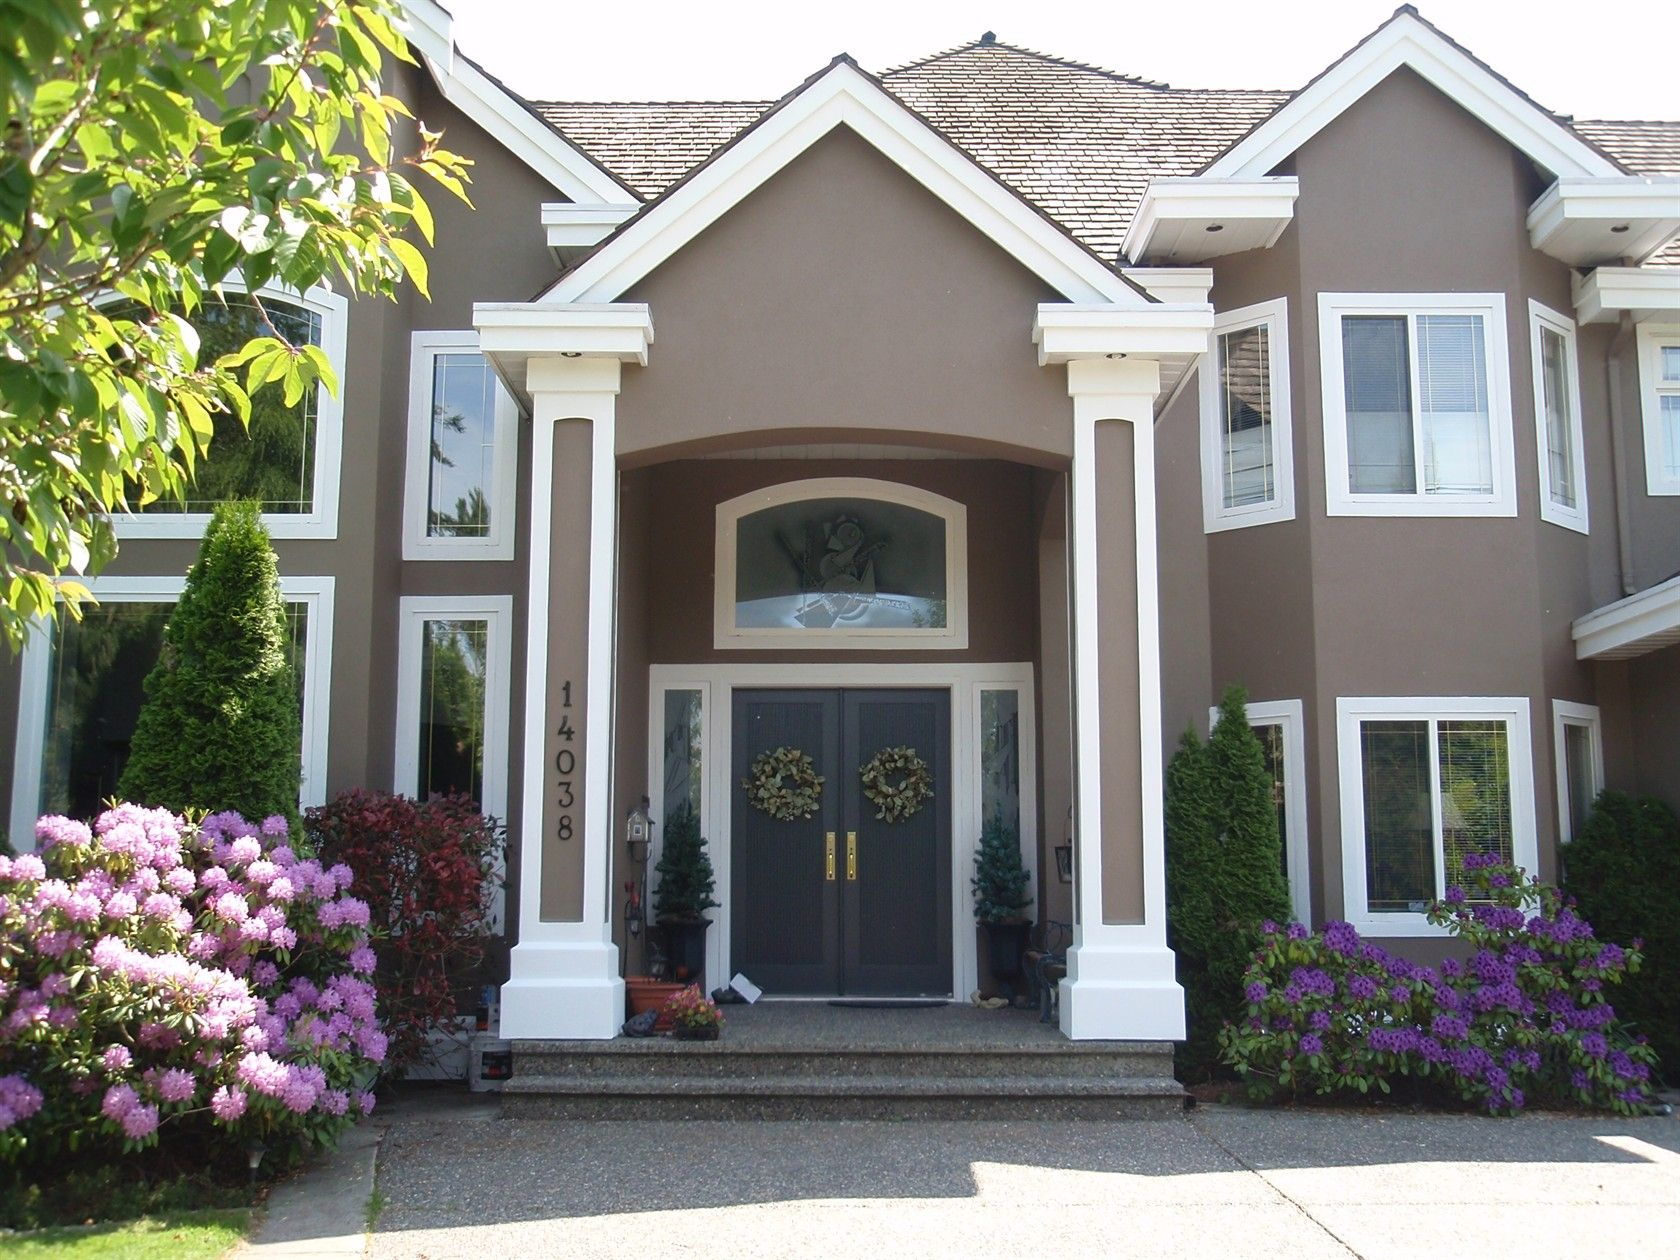 Home painting exterior - Home Idea Exterior House Color Looking For Professional House Painting In Stamford Ct